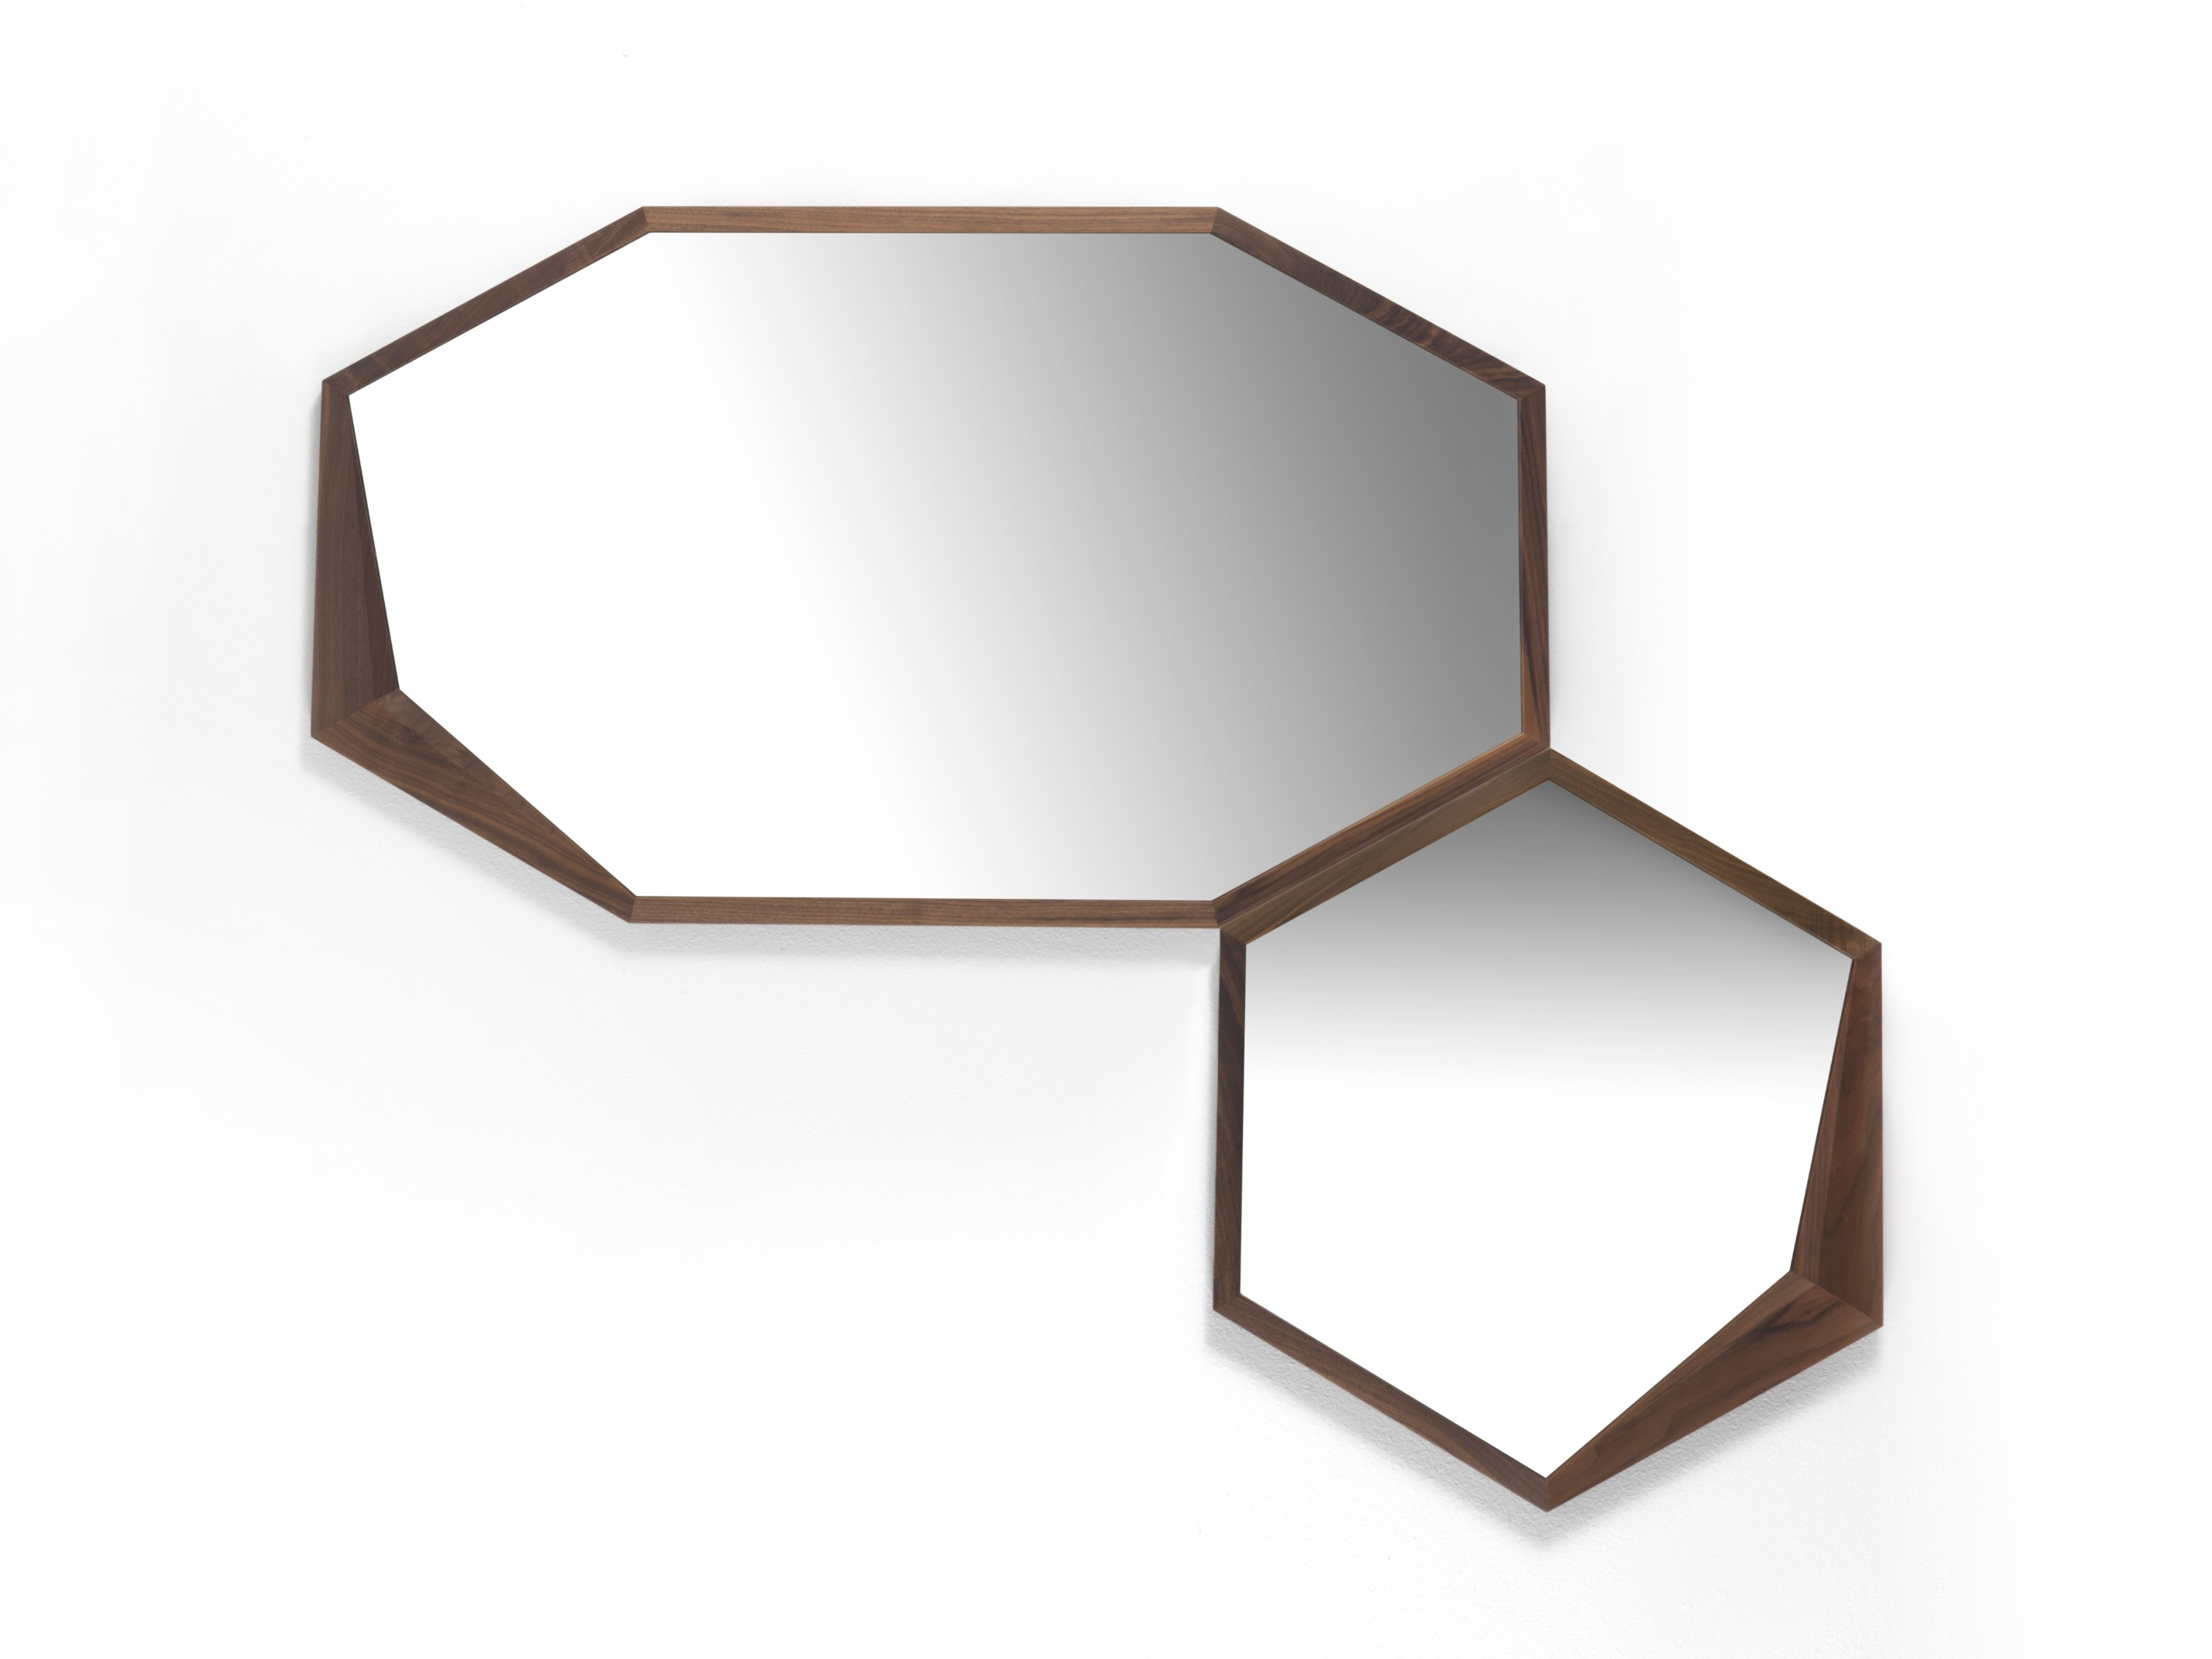 Edes Mirror - The minimalist shape of this hexagonal mirror is framed in an exquisite solid walnut structure that has a charming accent in one of its corners where the wood gets thicker, adding a modern flair to this timeless object of functional decor. A stylish addition to any home, this piece can be paired with the other Edes mirror in this collection for a dynamic look and its wooden frame can be made in solid durmast oak. Just ask the concierge for details. | Matter of Stuff